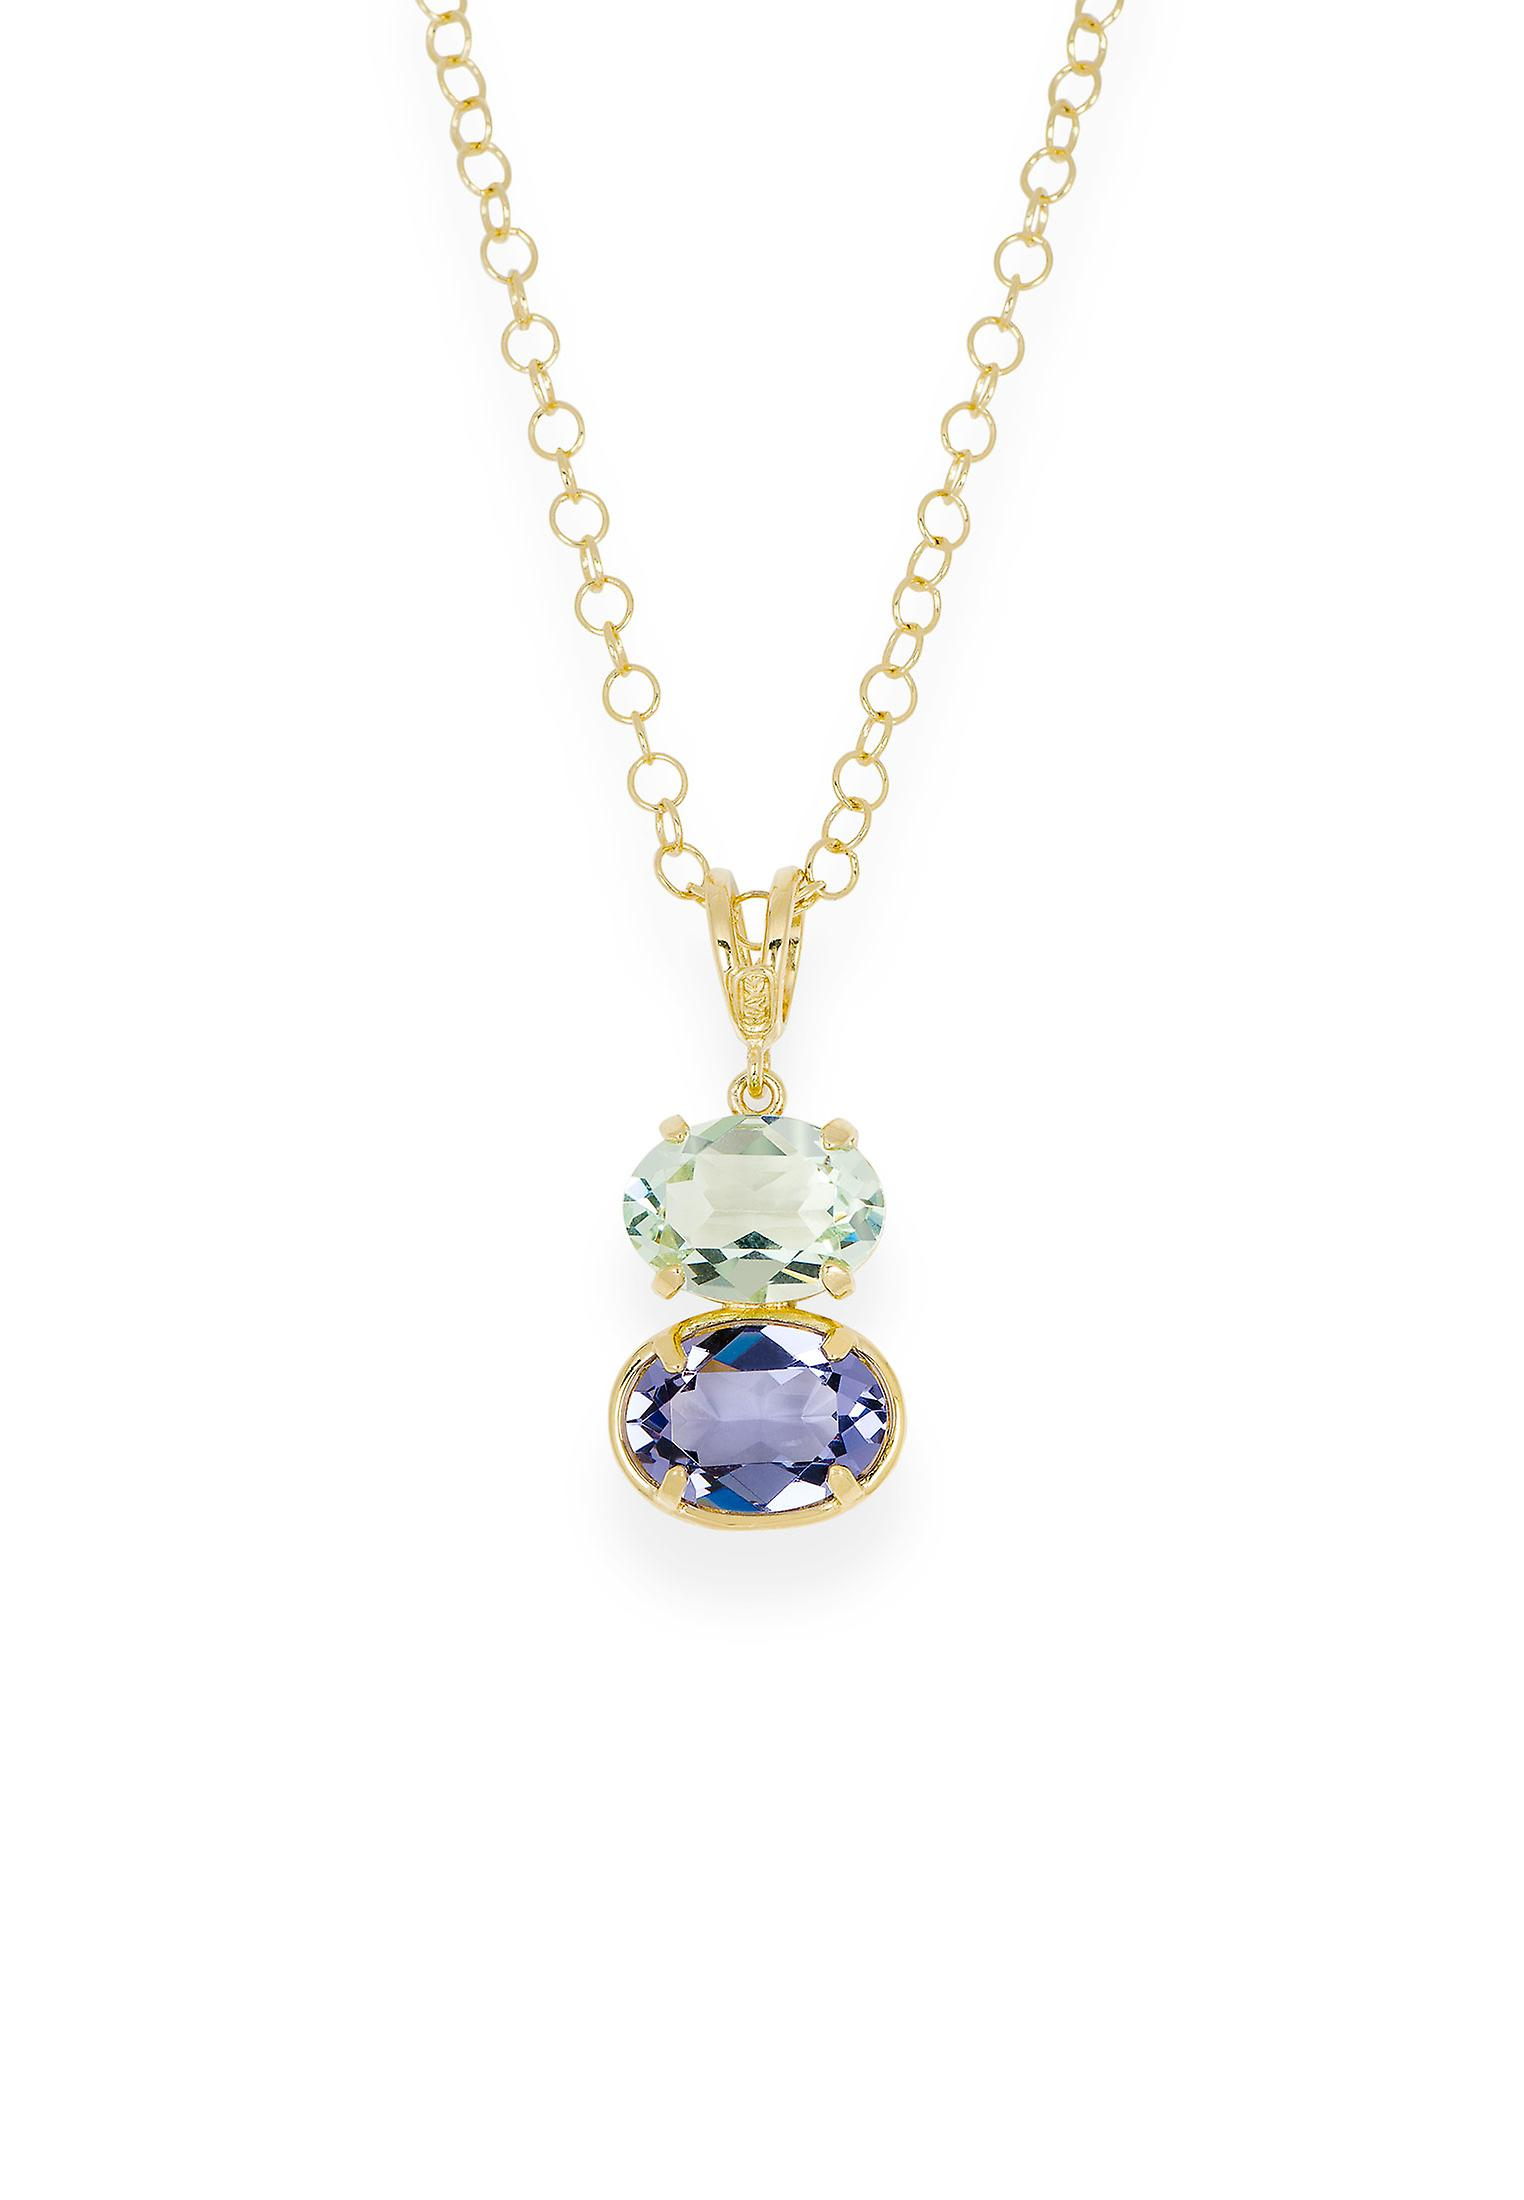 Multicolor pendant with crystals from Swarovski 9248